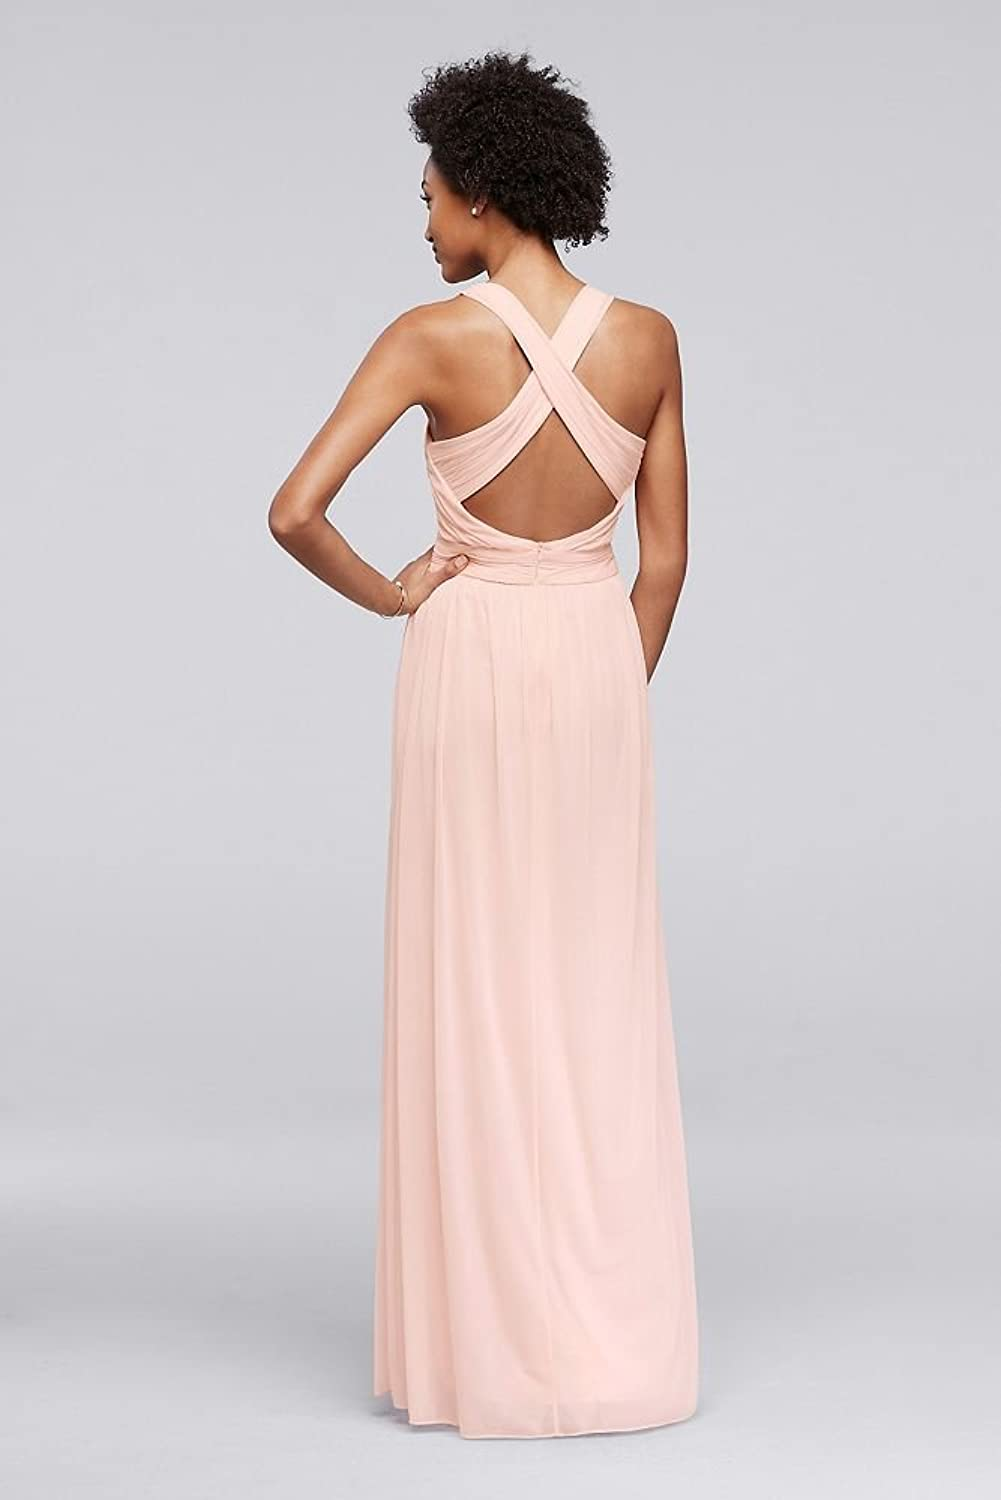 Davids bridal long bridesmaid dress with crisscross back straps davids bridal long bridesmaid dress with crisscross back straps style w10974 at amazon womens clothing store ombrellifo Gallery